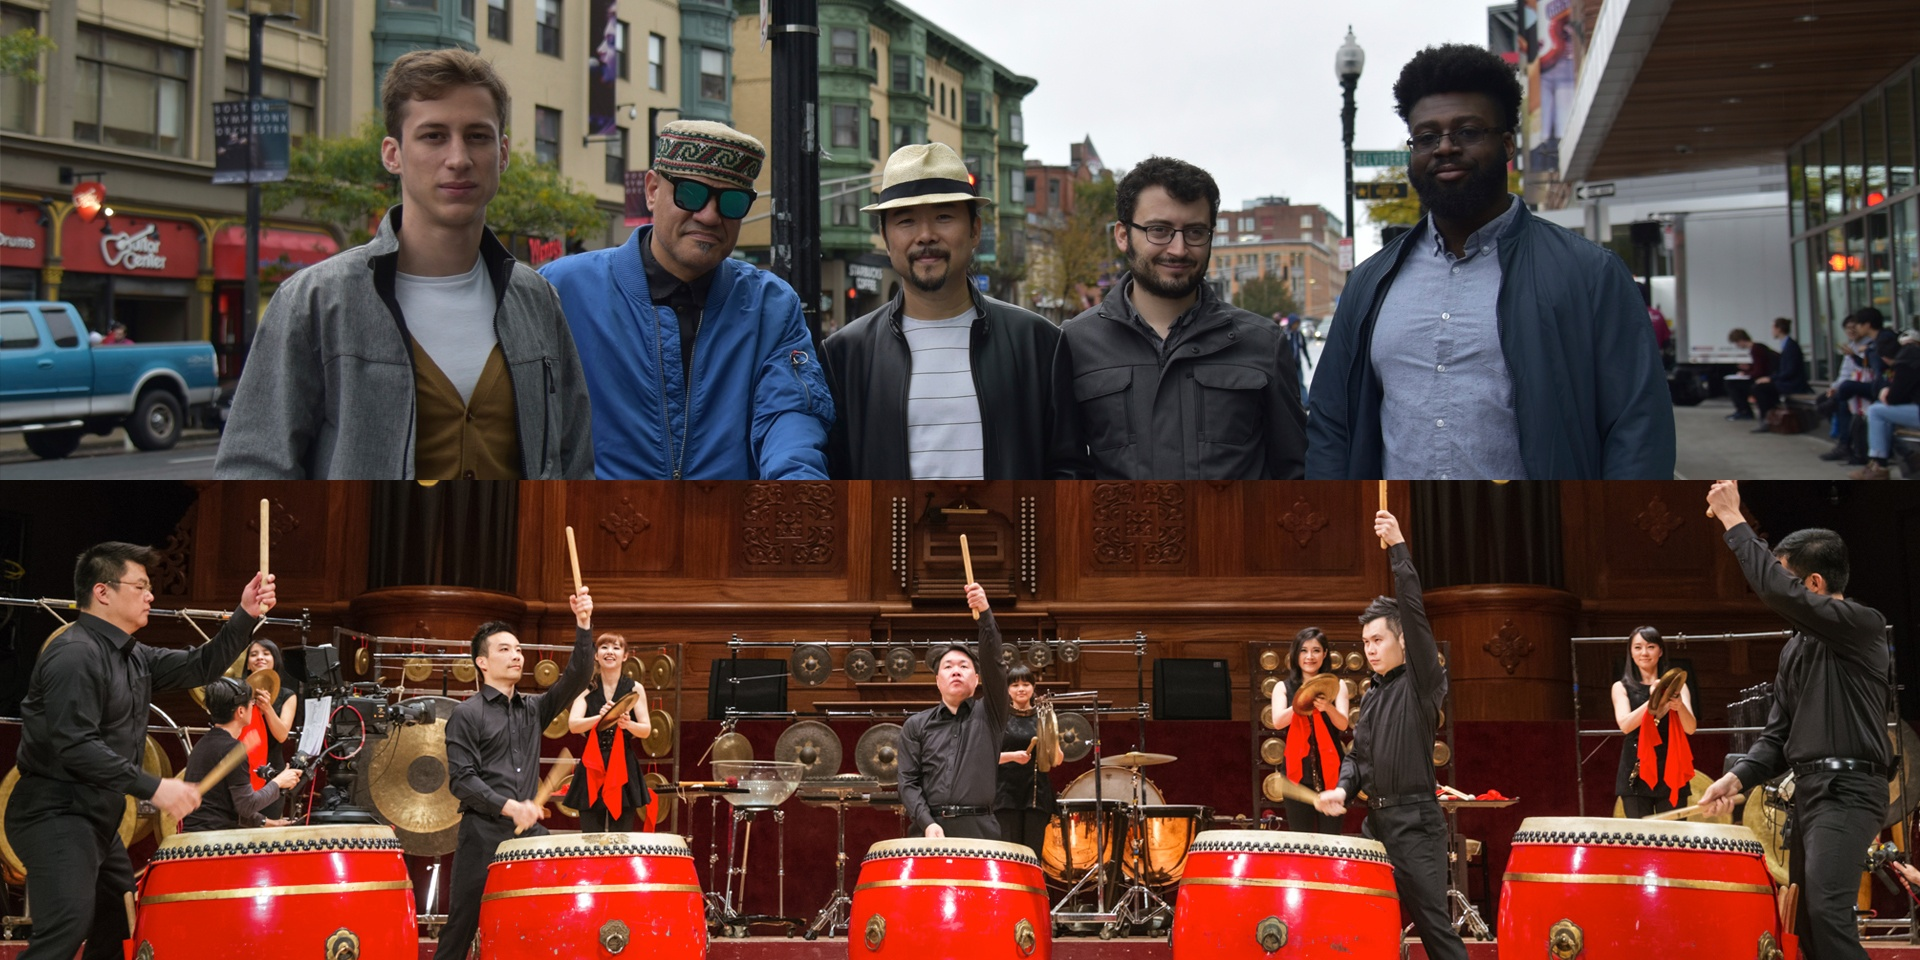 Huayi 2018 promises musical virtuosity in the sounds of suona jazz and percussion ensemble